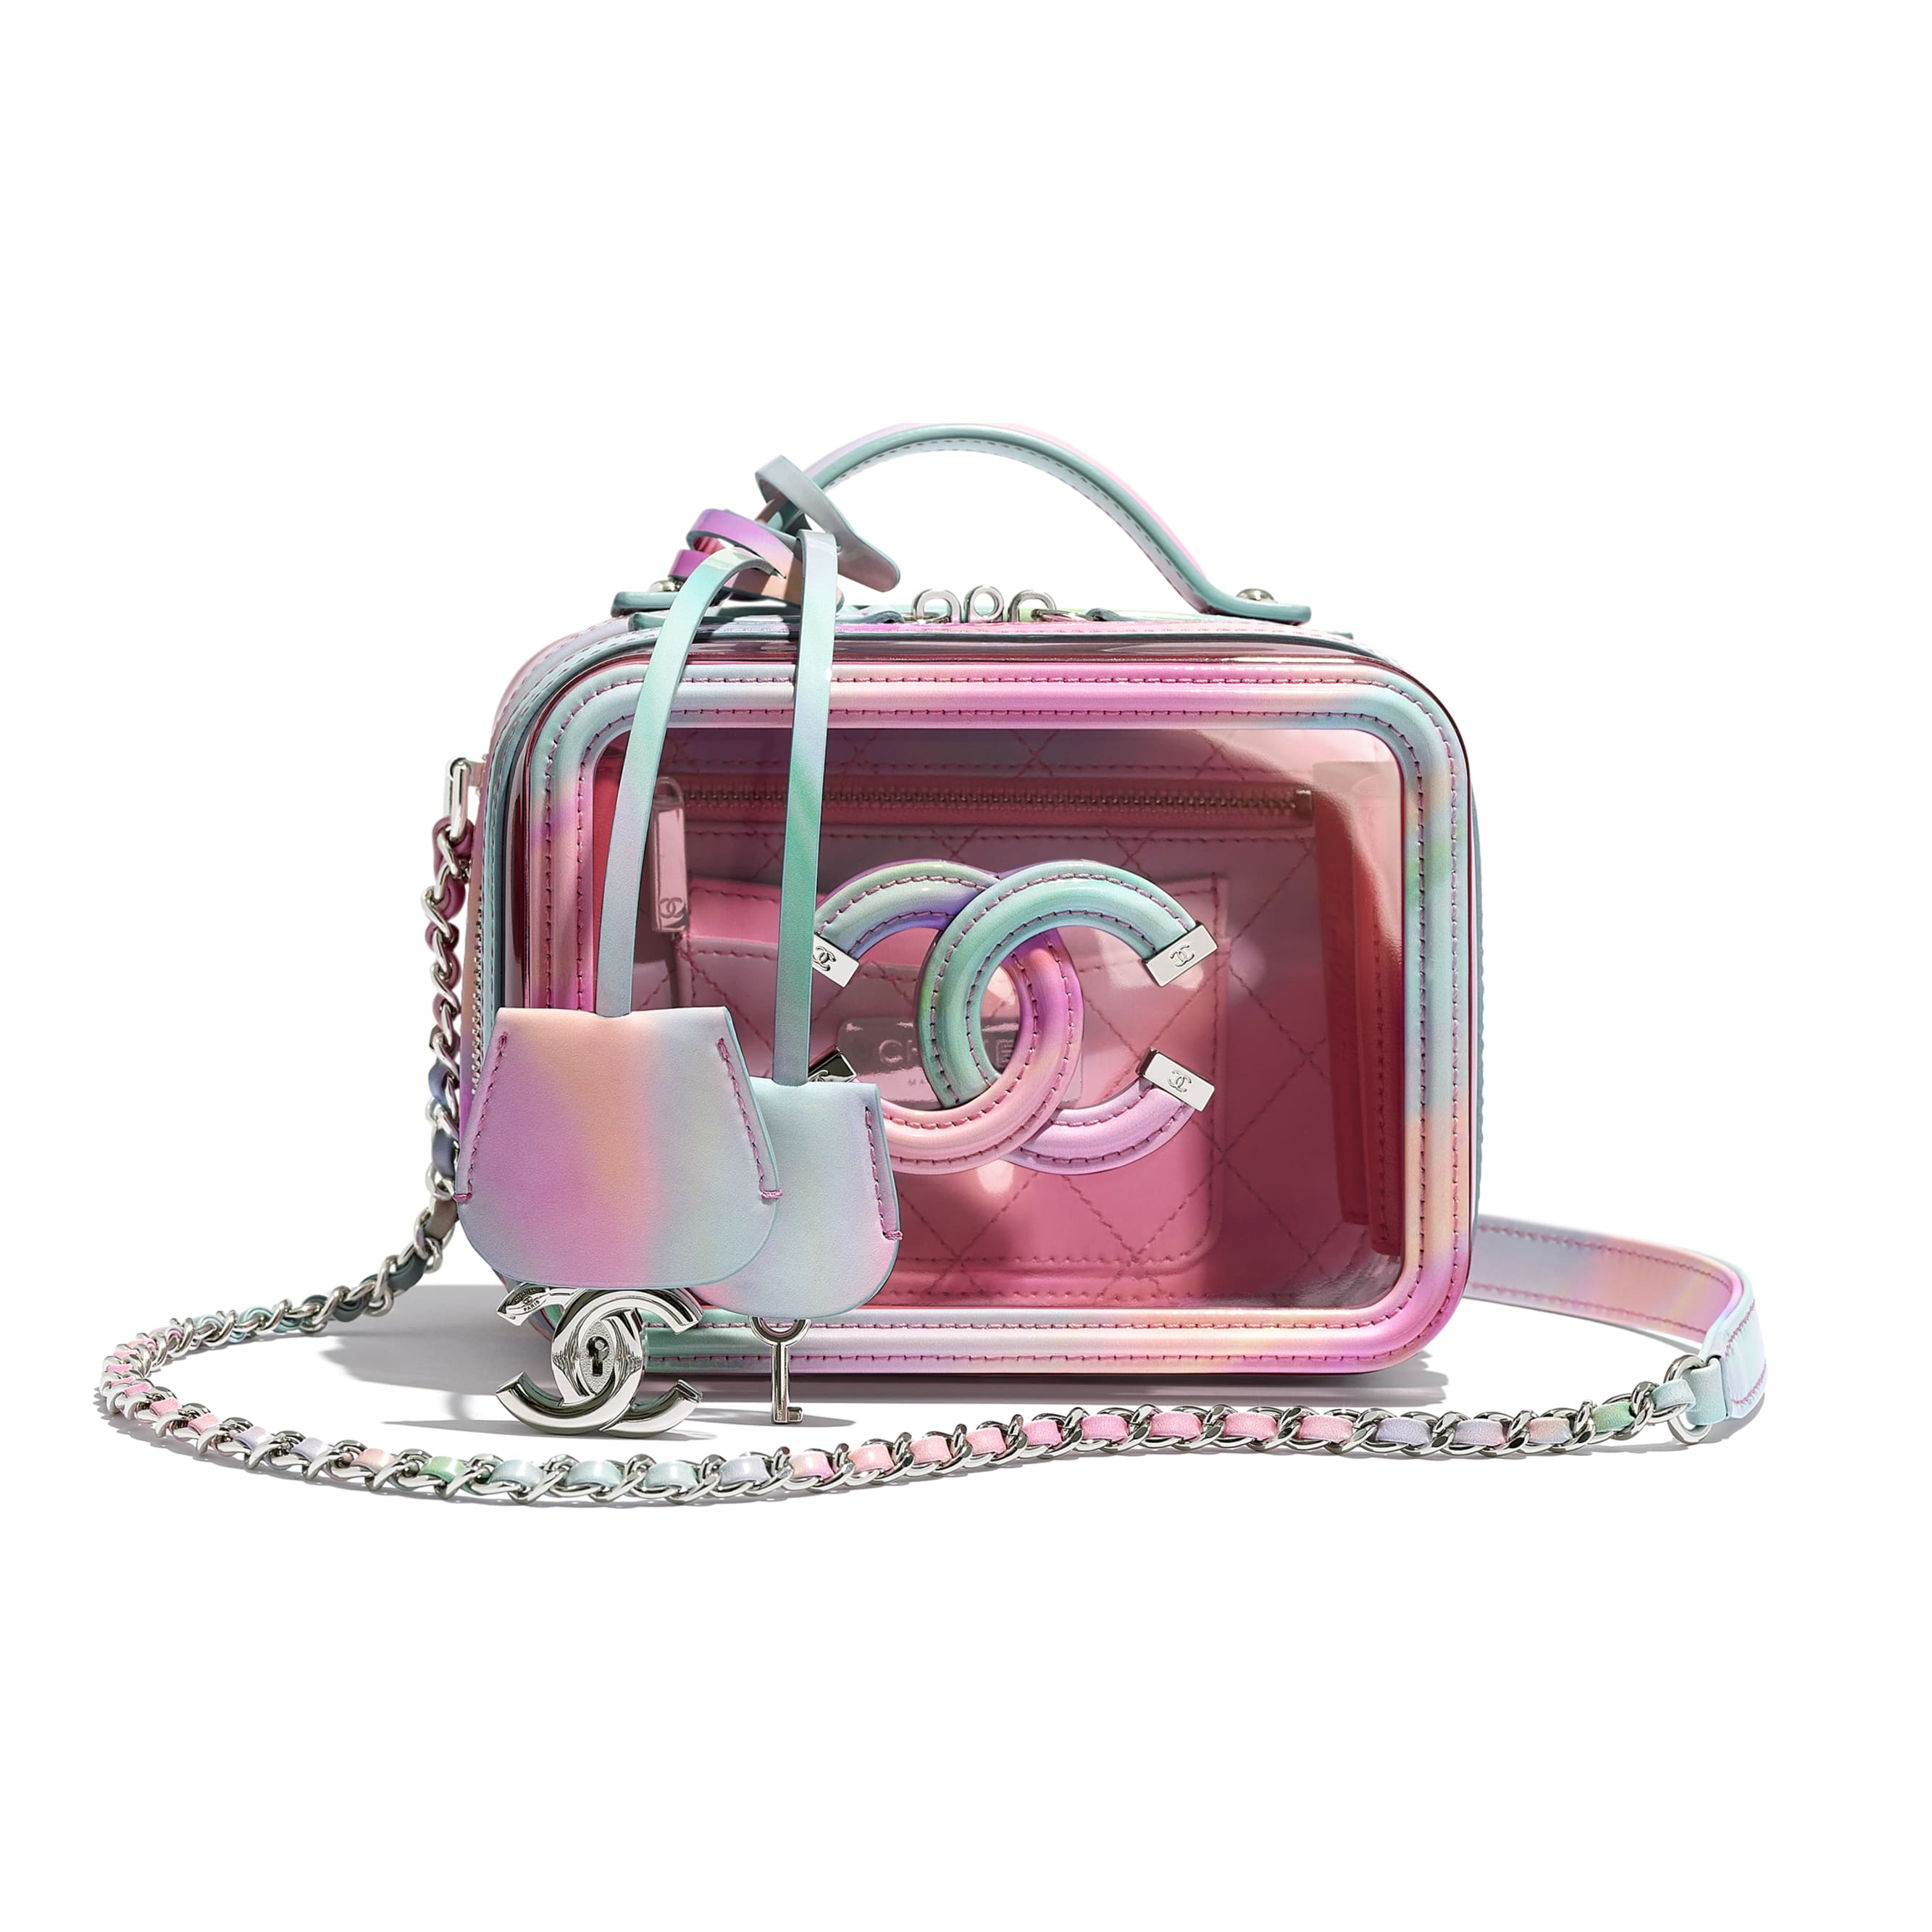 Small Vanity Case - Multicolor - PVC, Patent Calfskin, Patent Lambskin & Silver-Tone Metal - CHANEL - Default view - see standard sized version